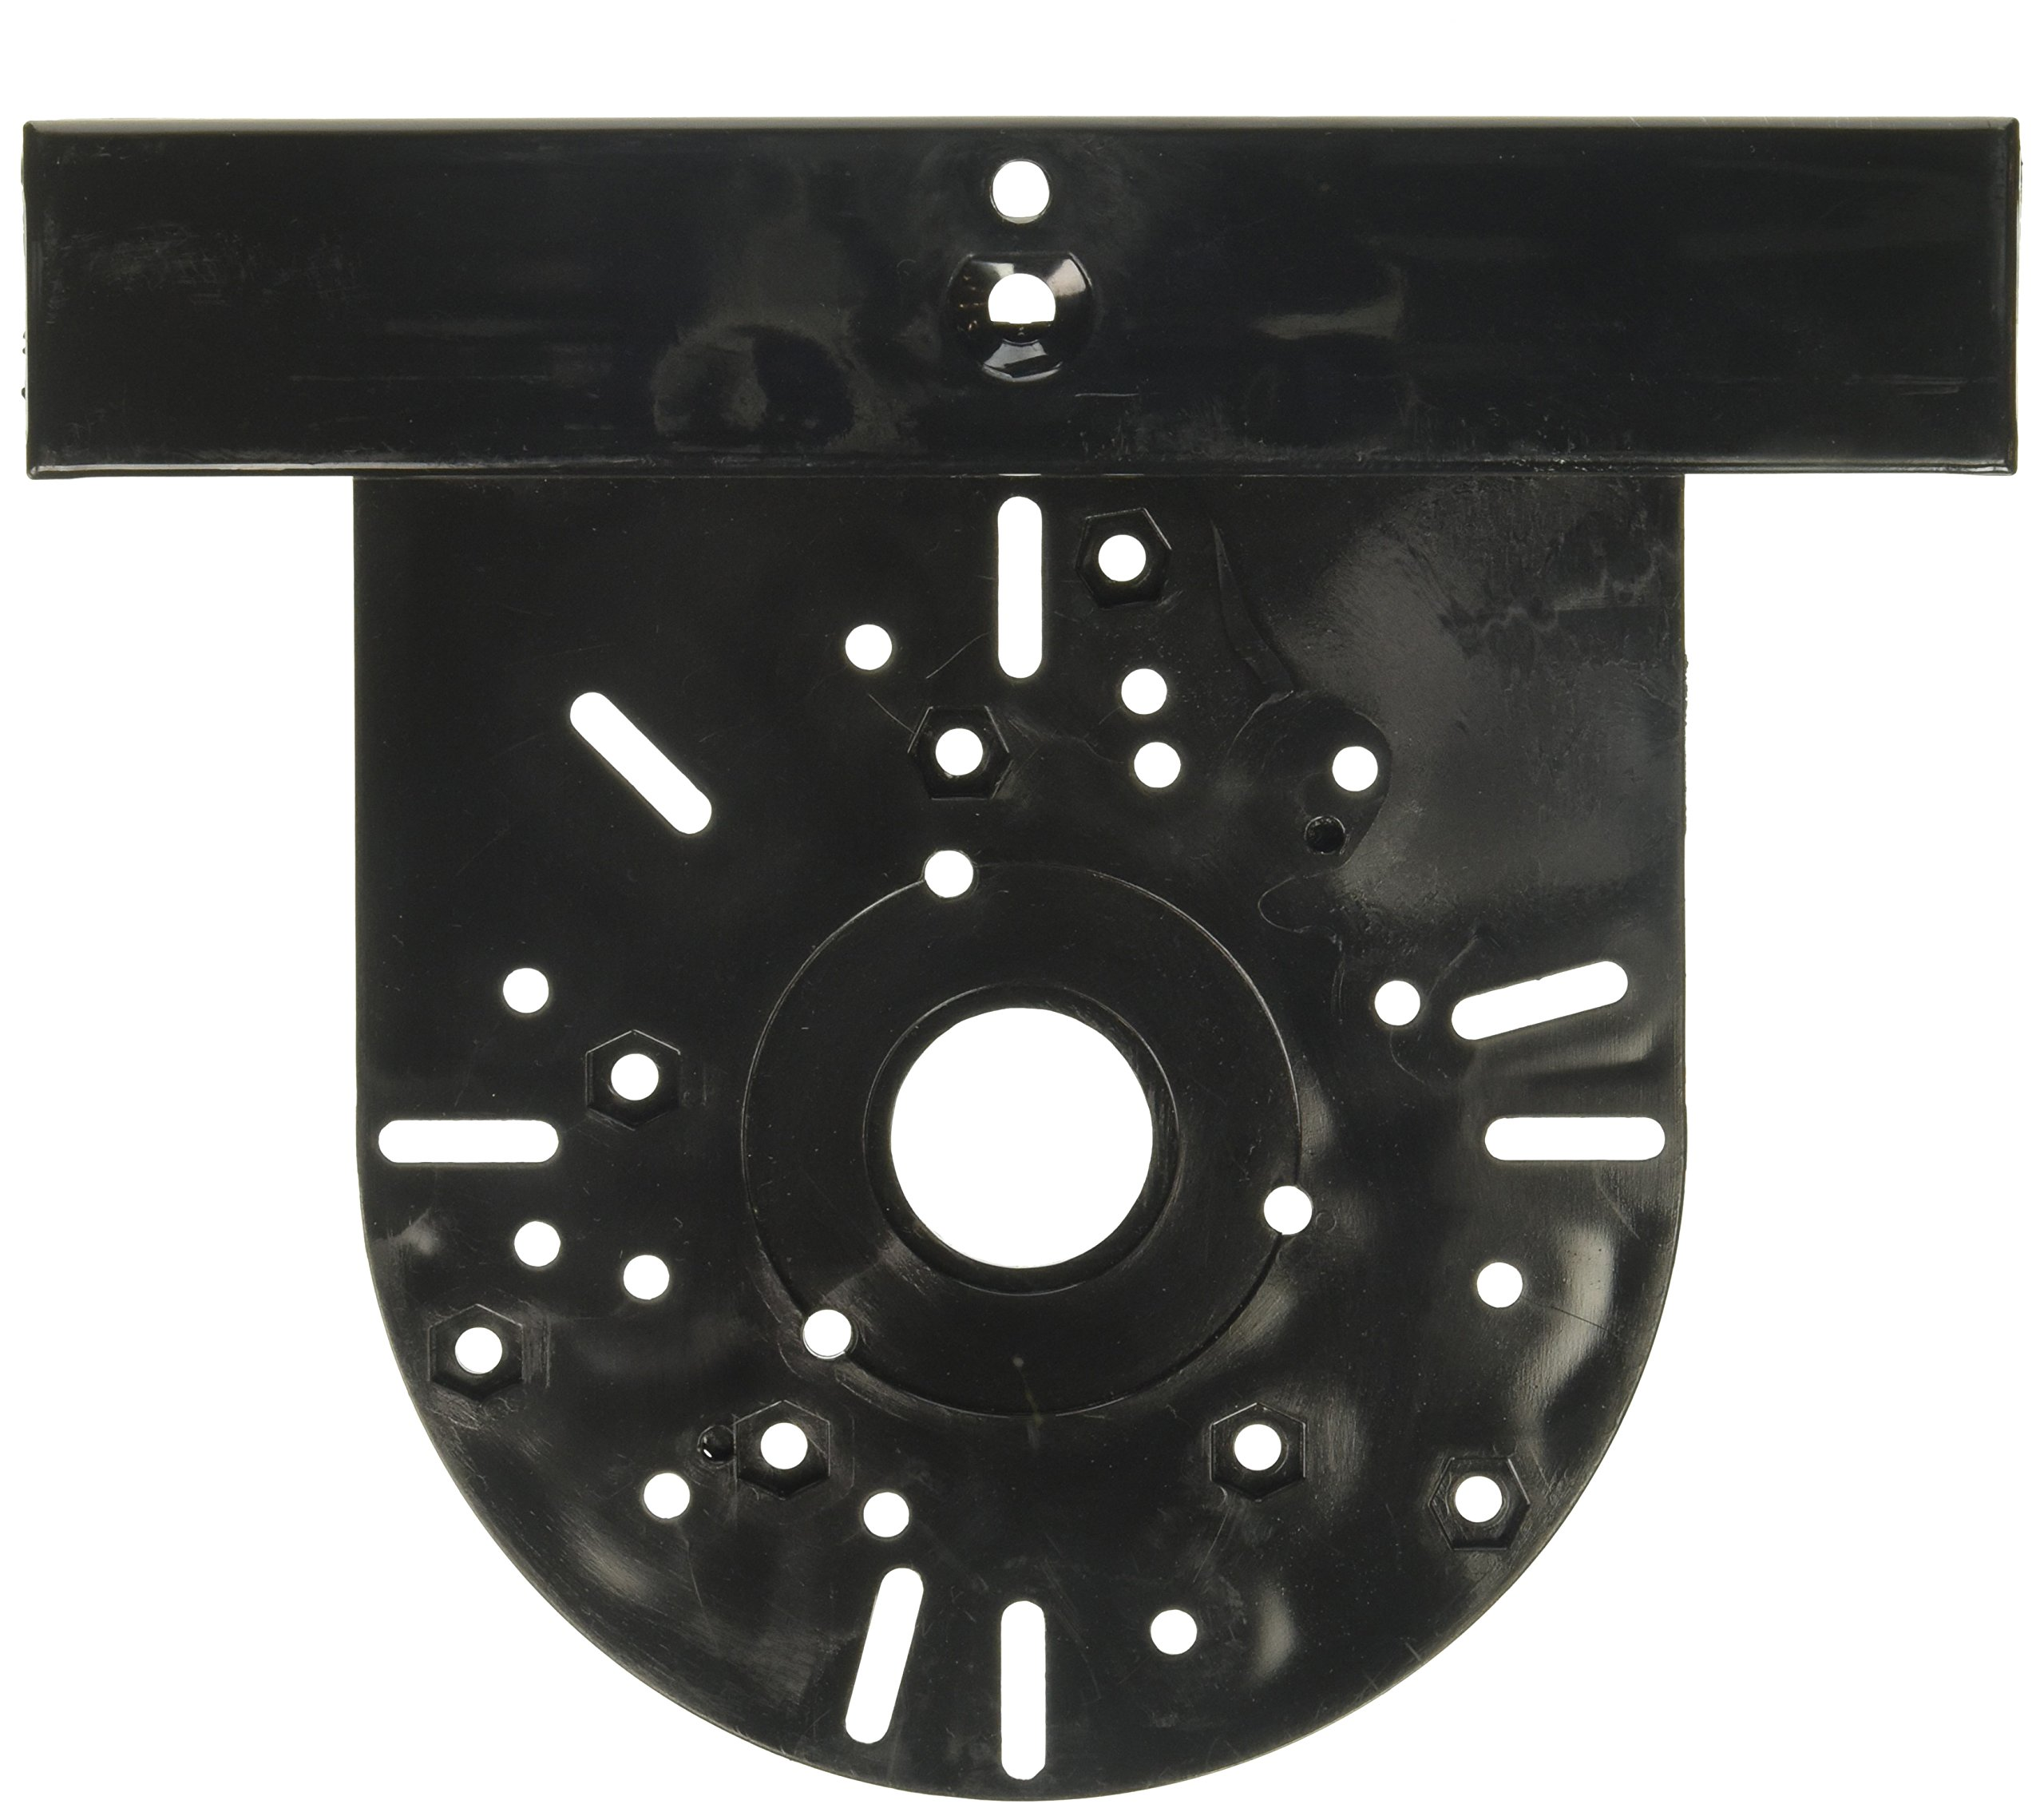 E. Emerson Tool Co. XCRP All-In-One Contractor Router Plate